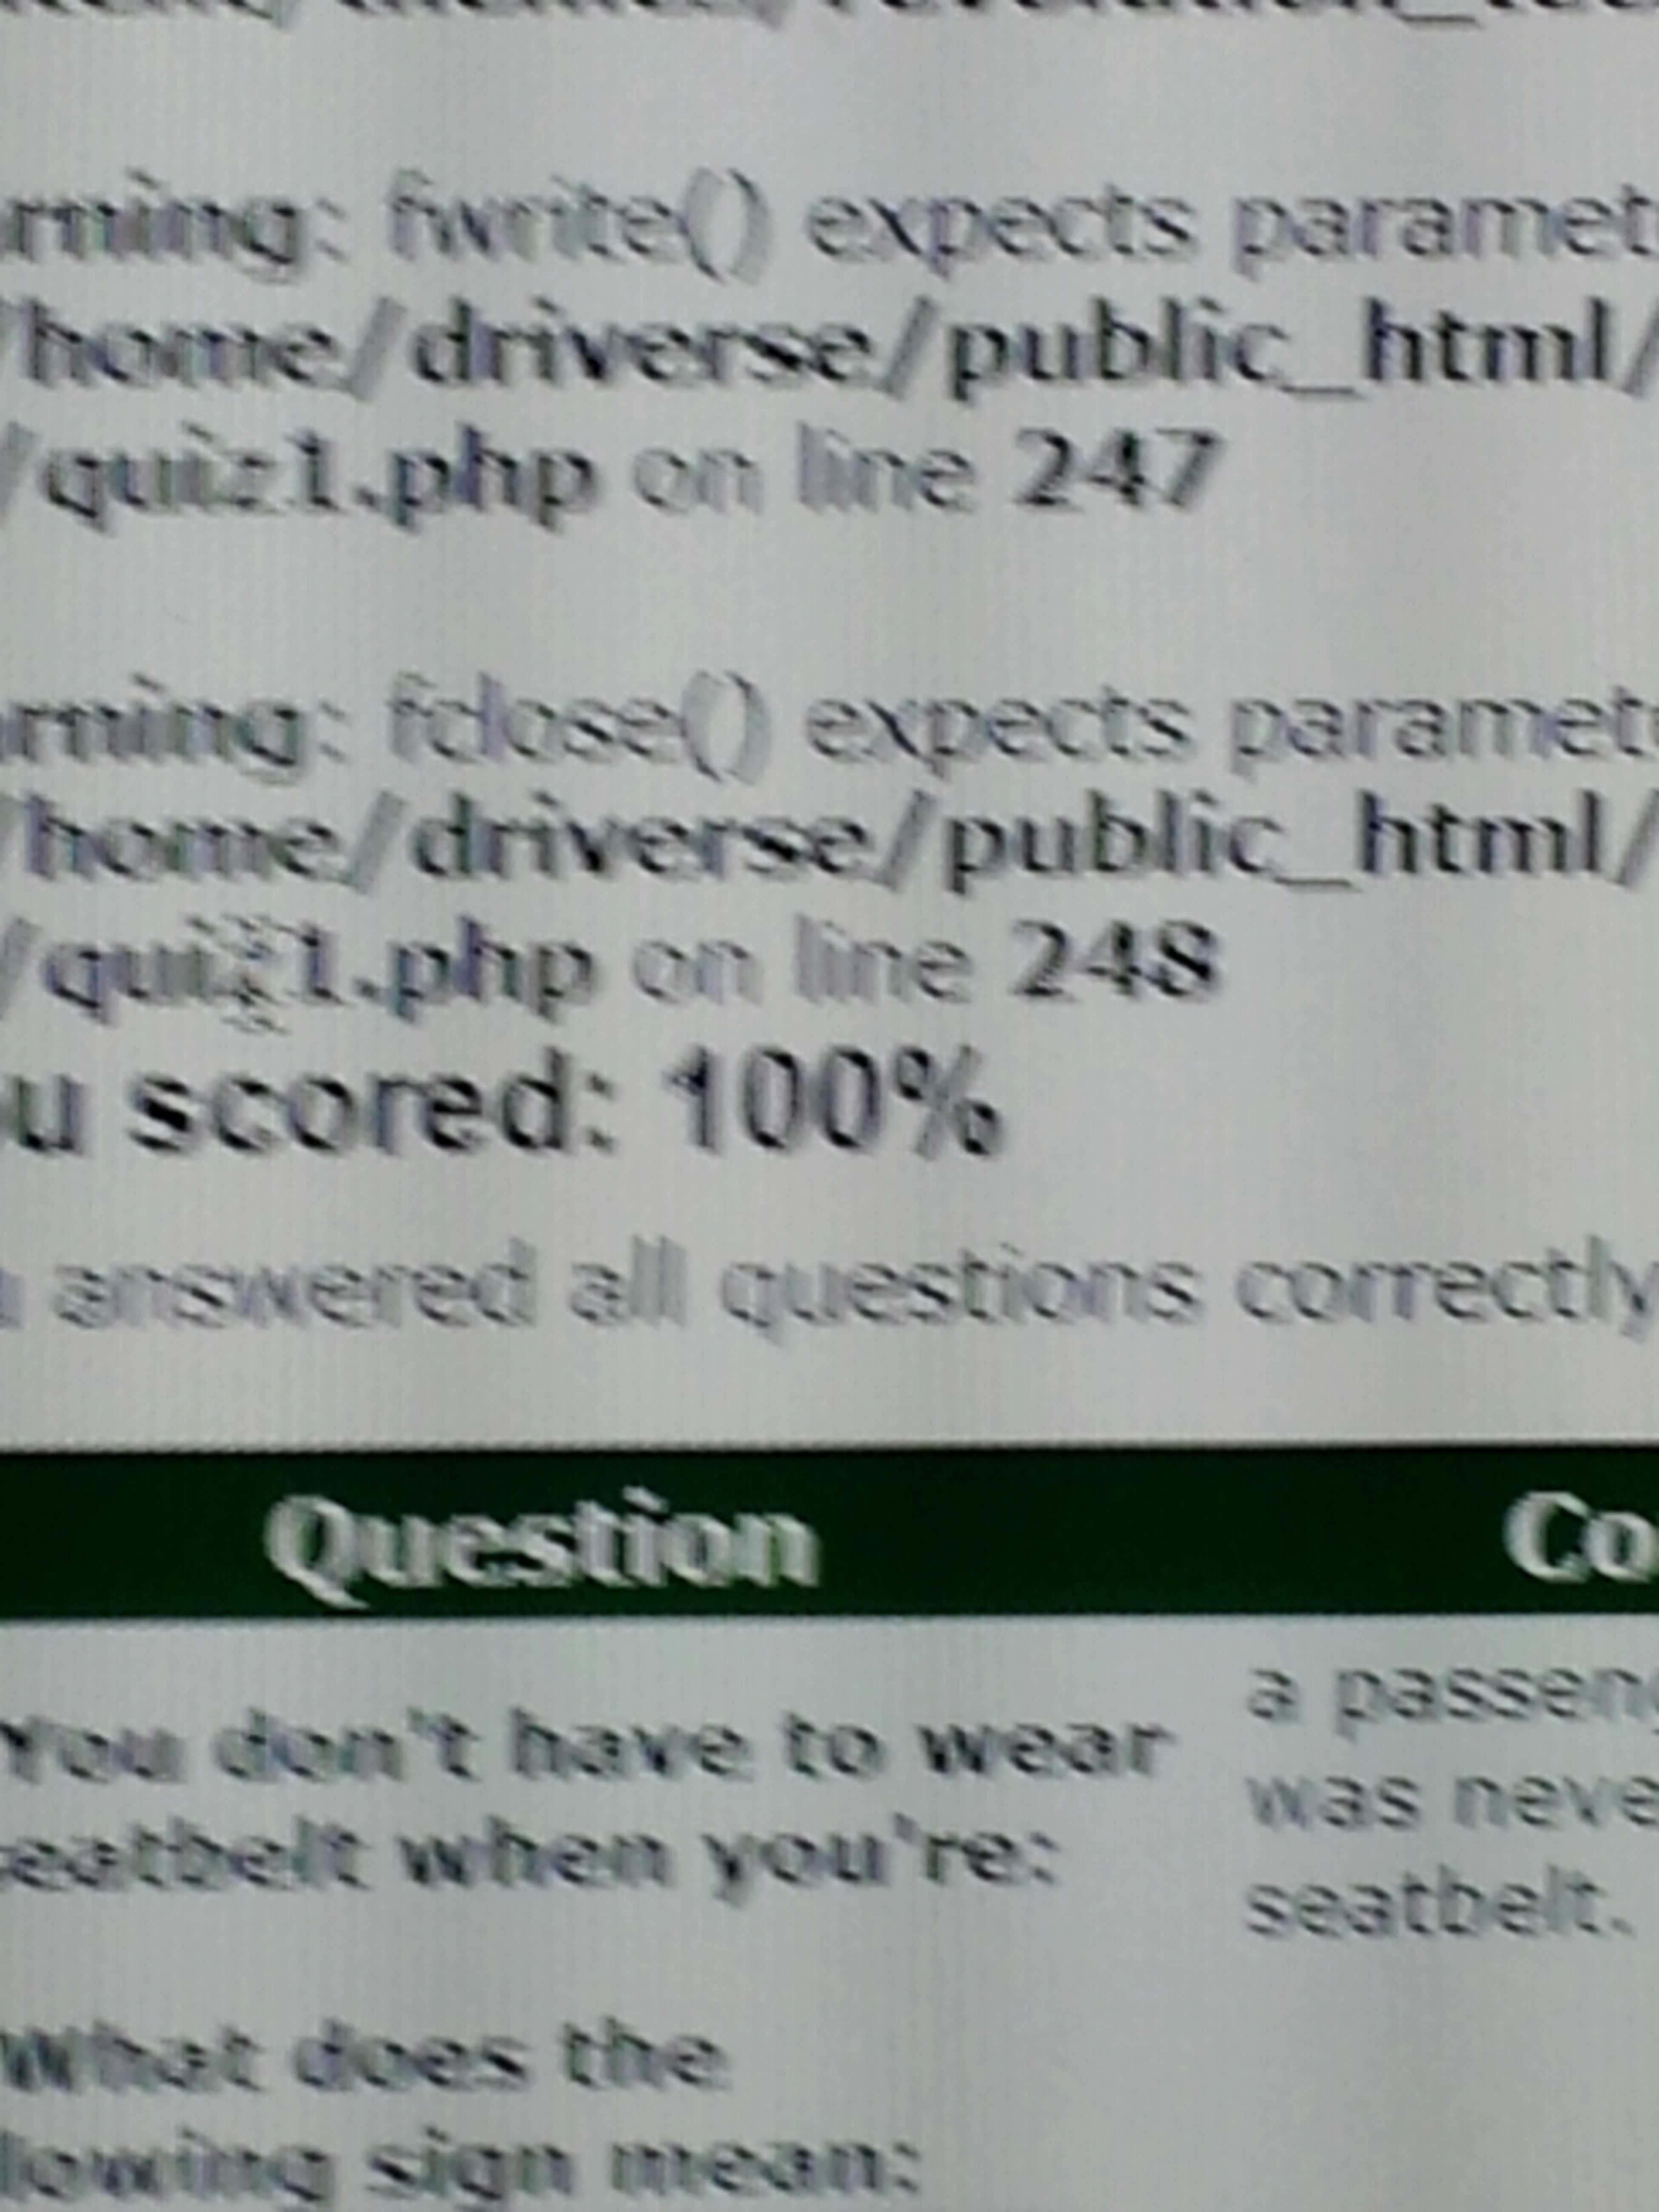 Getting An A On My Permit Test